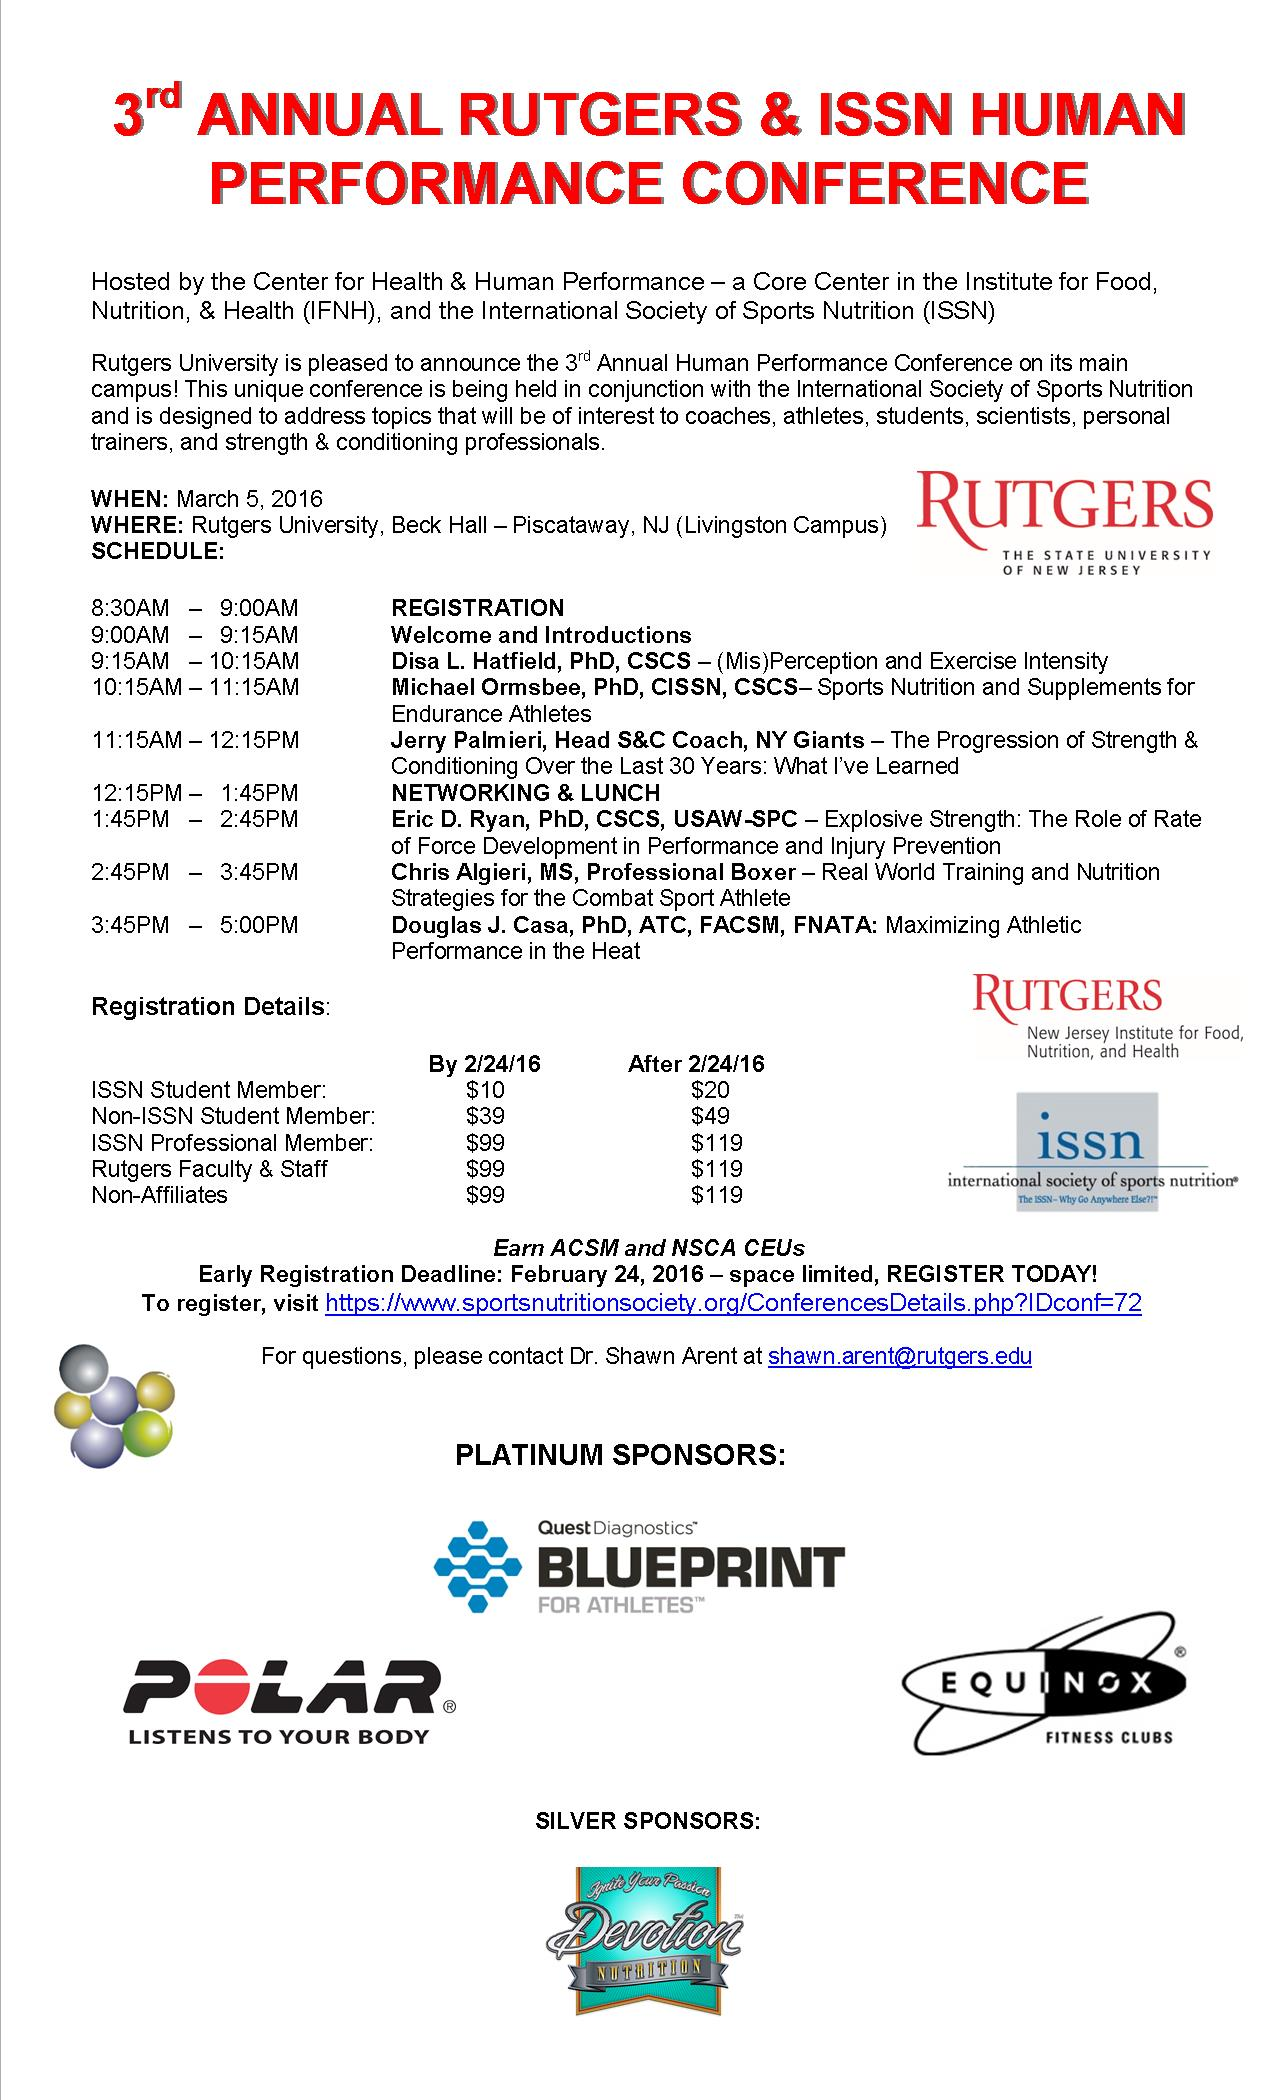 3rd Annual Rutgers Human Performance Conference ISSN Jan 2016